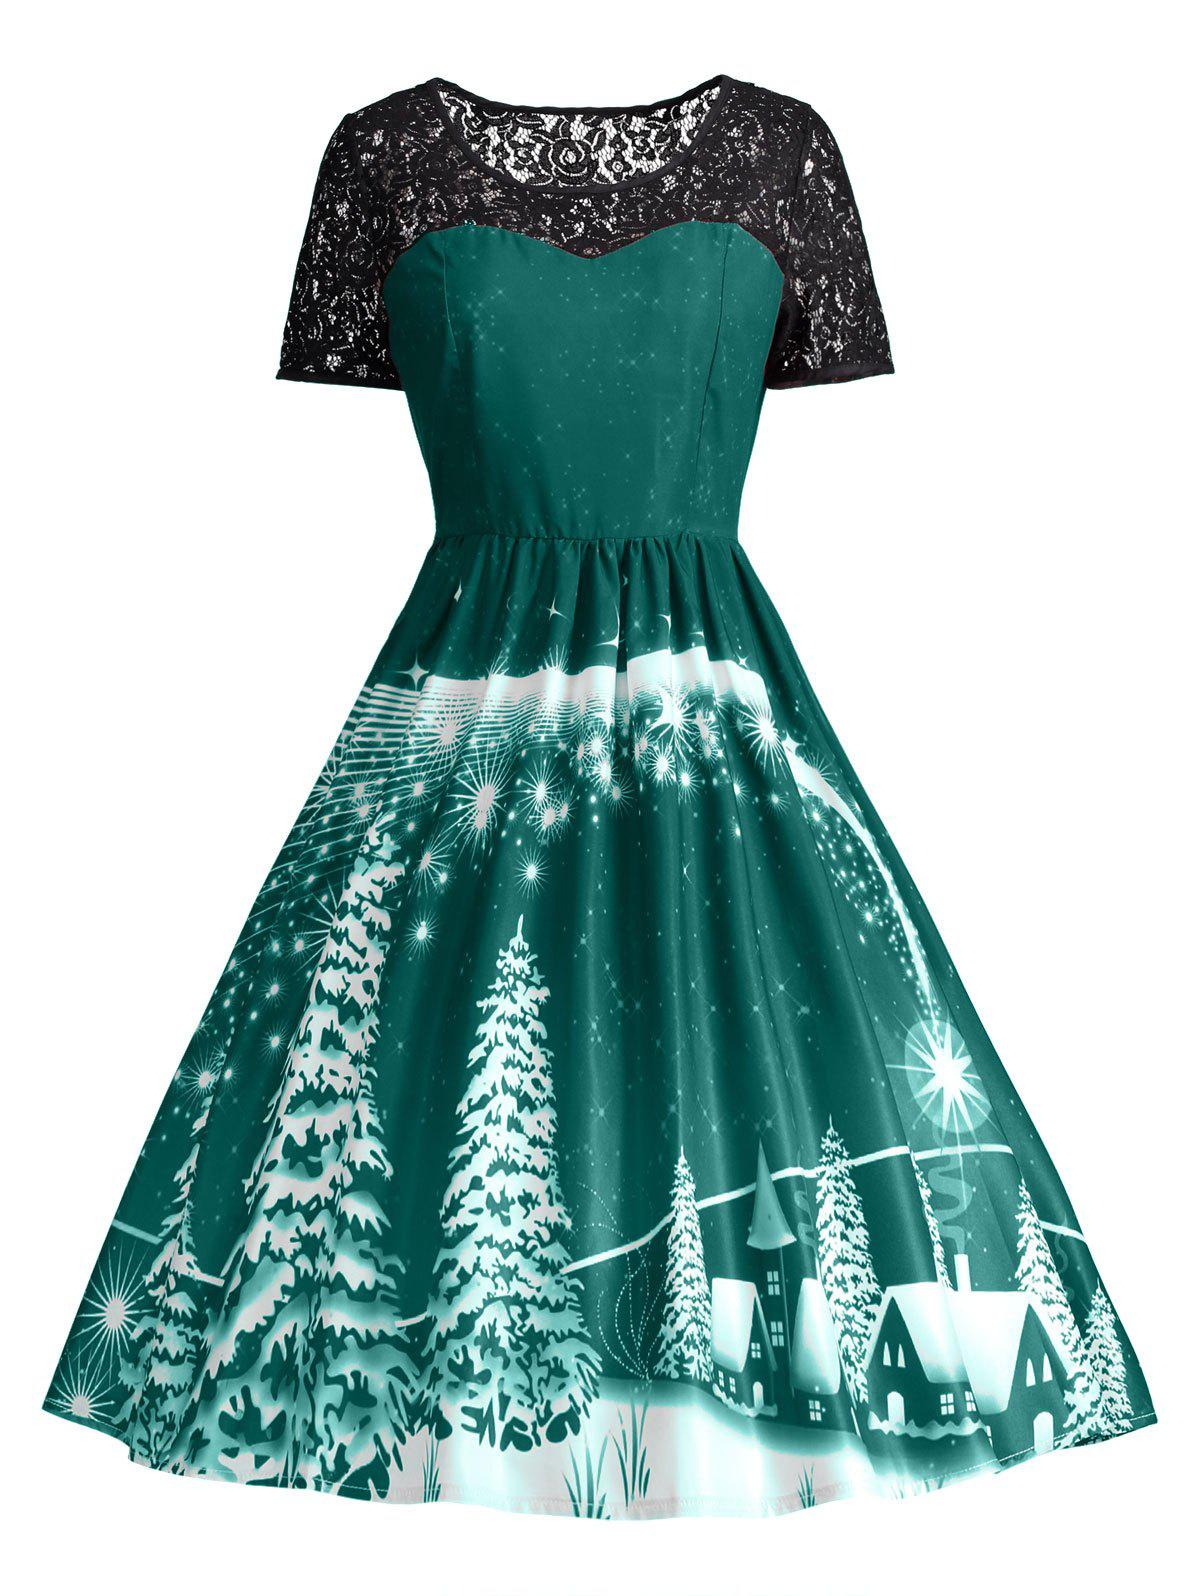 Ugly Christmas Party Lace Trim Vintage DressWOMEN<br><br>Size: L; Color: GREEN; Style: Cute; Material: Polyester,Spandex; Silhouette: A-Line; Dresses Length: Knee-Length; Neckline: Round Collar; Sleeve Length: Short Sleeves; Pattern Type: Others; With Belt: No; Season: Fall,Spring; Weight: 0.3150kg; Package Contents: 1 x Dress;